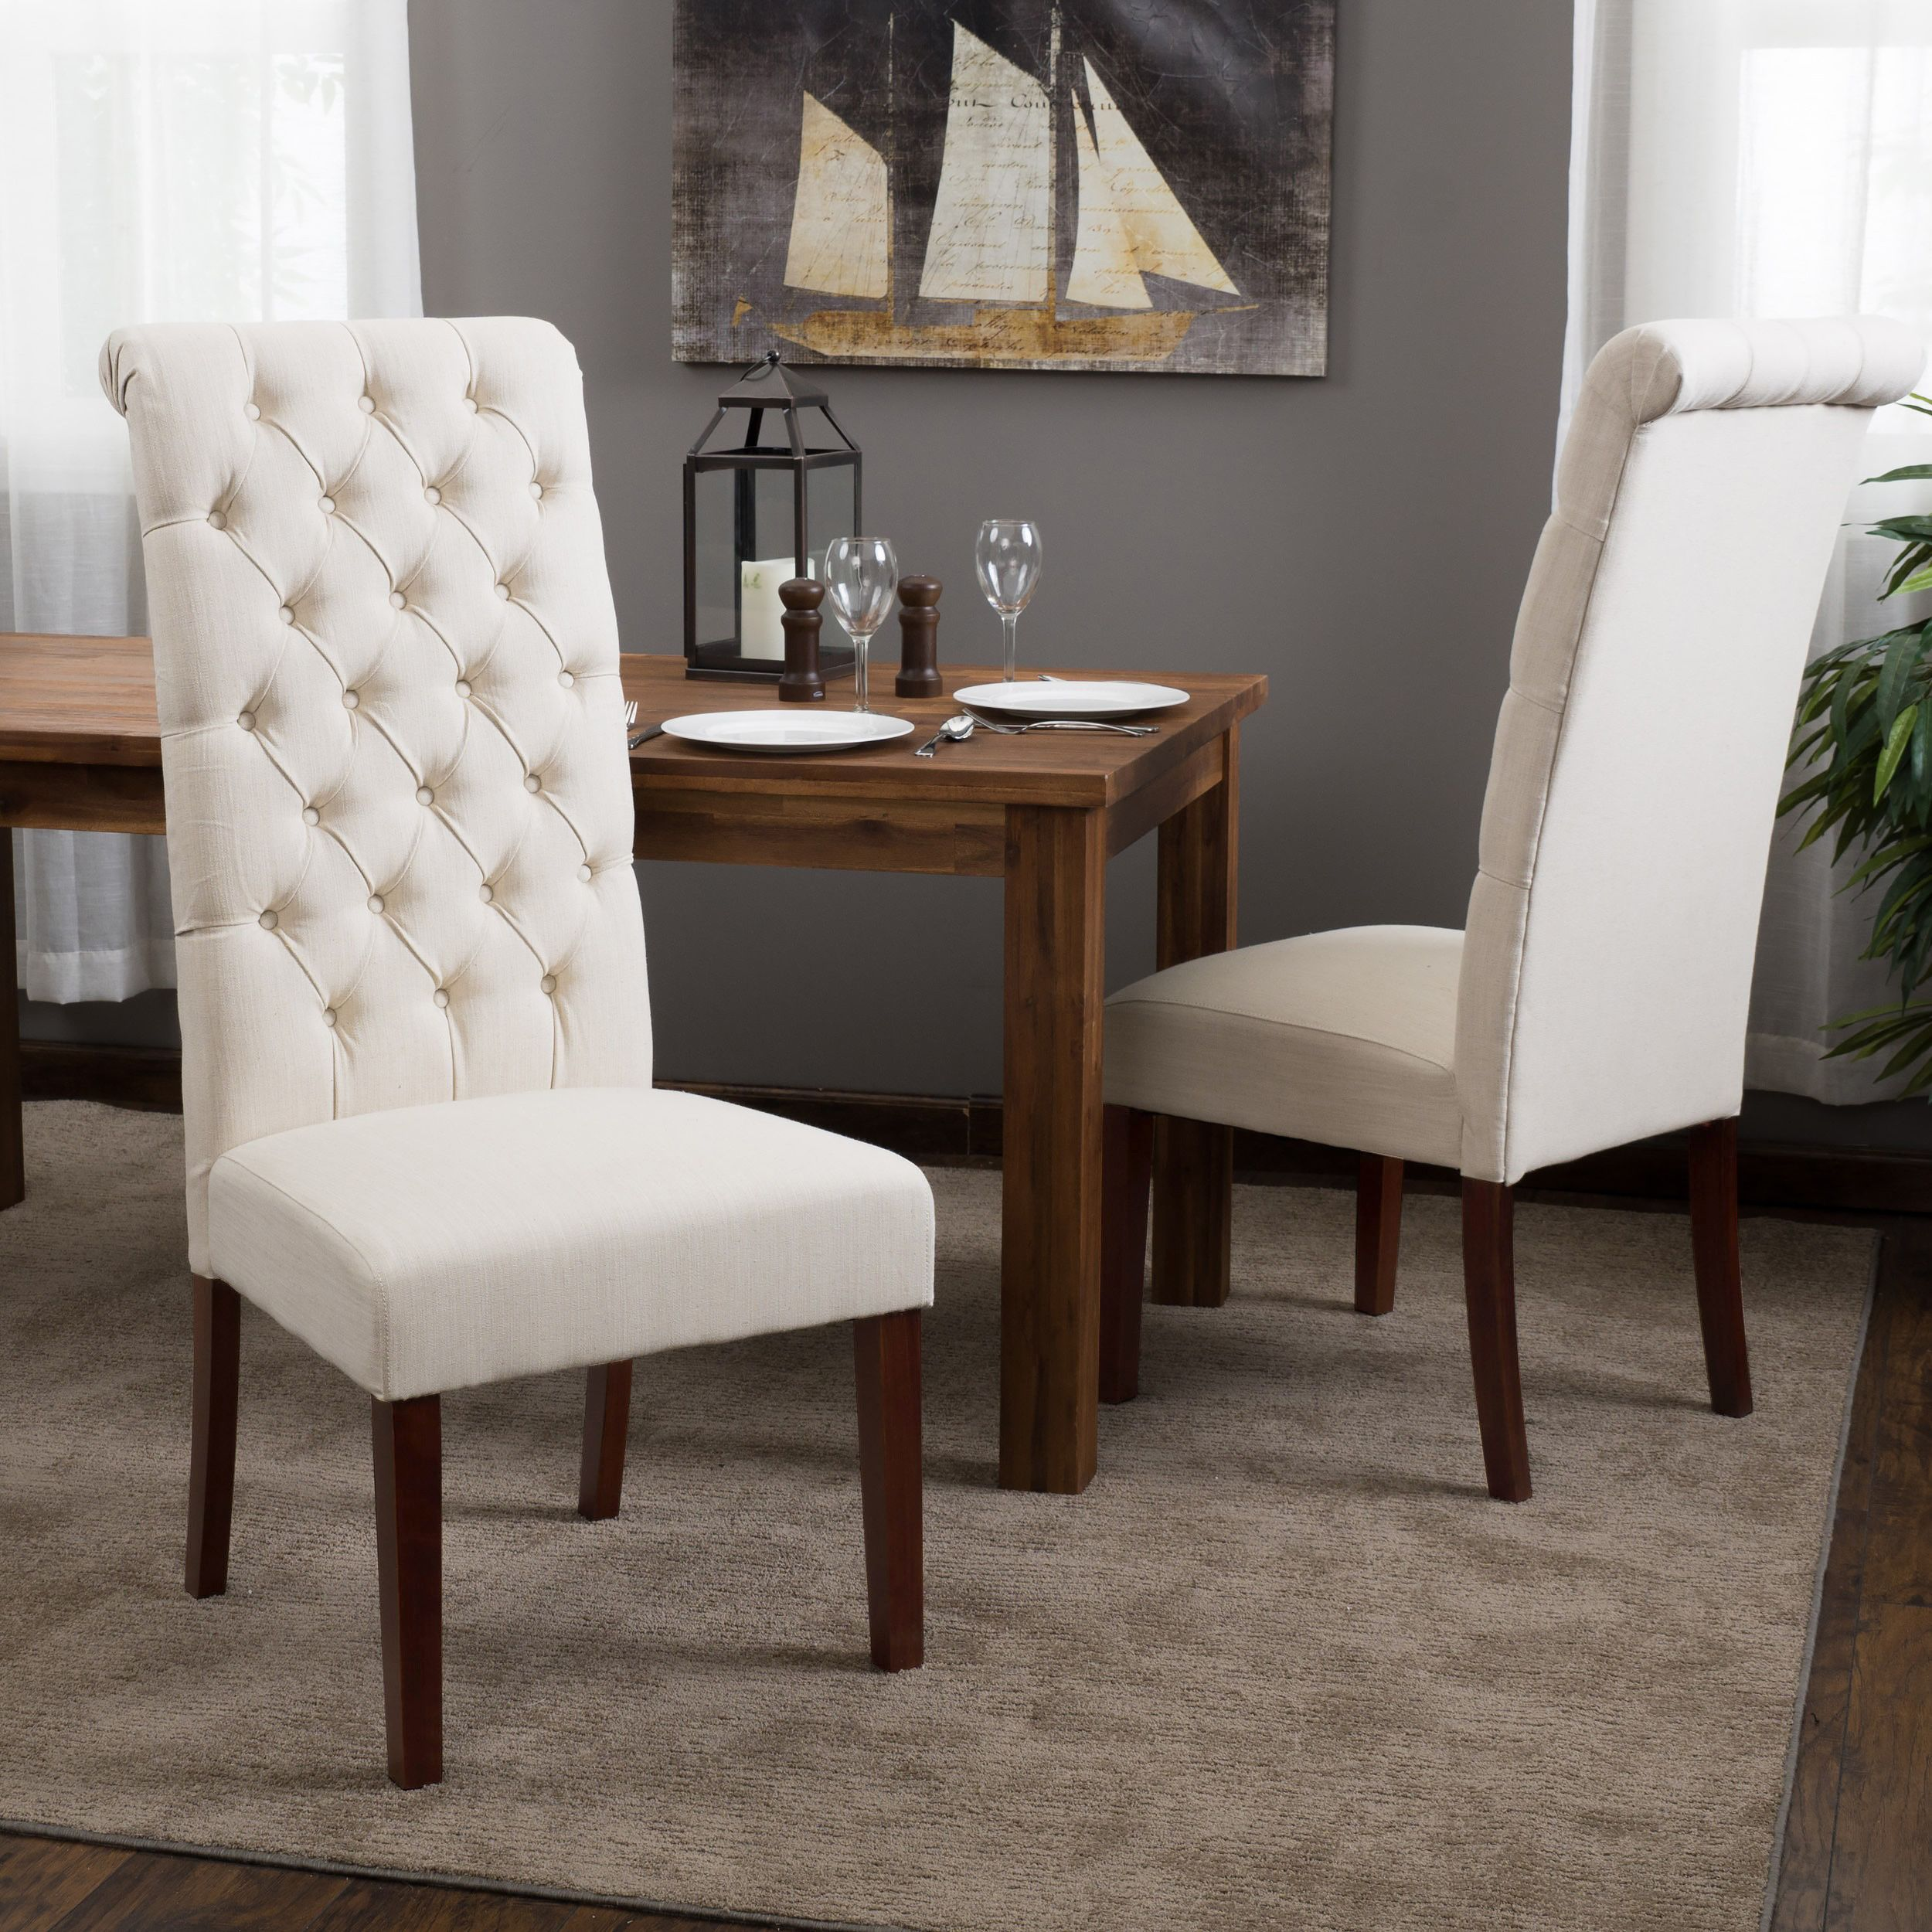 22 Awesome Linen Button Tufted Dining Chair In Dining Room For You